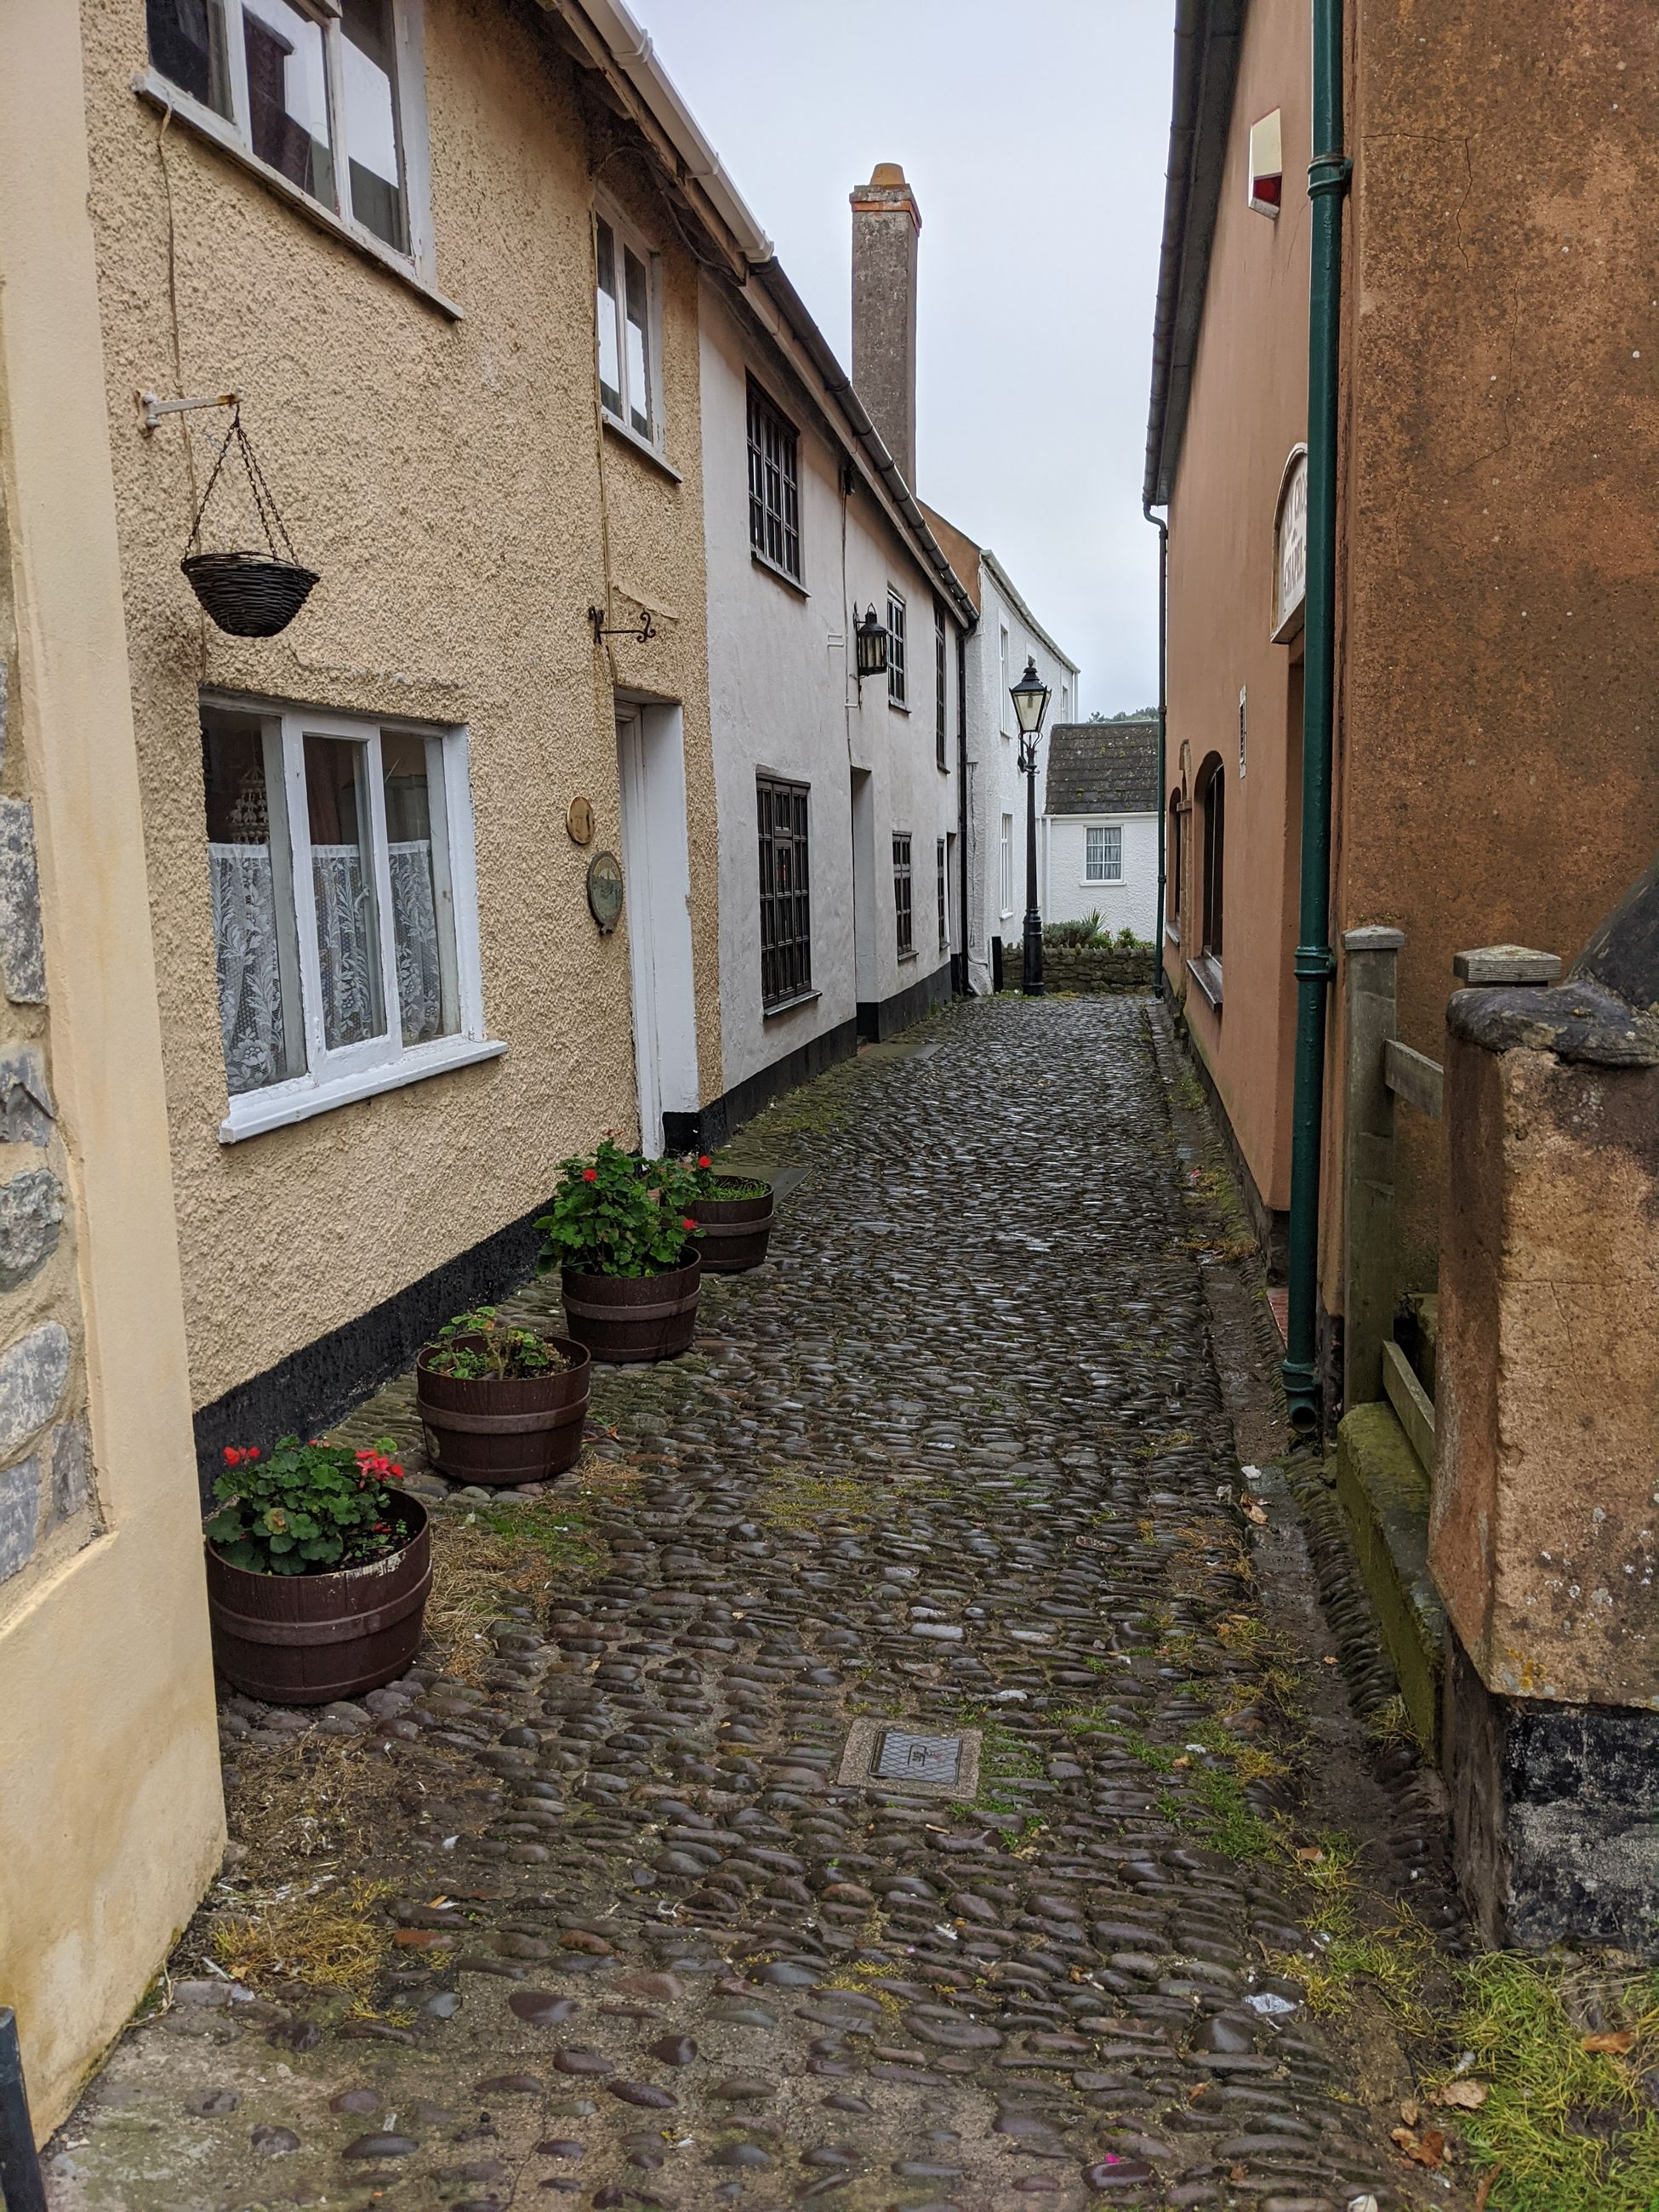 NARROW STREET BETWEEN BUILDINGS